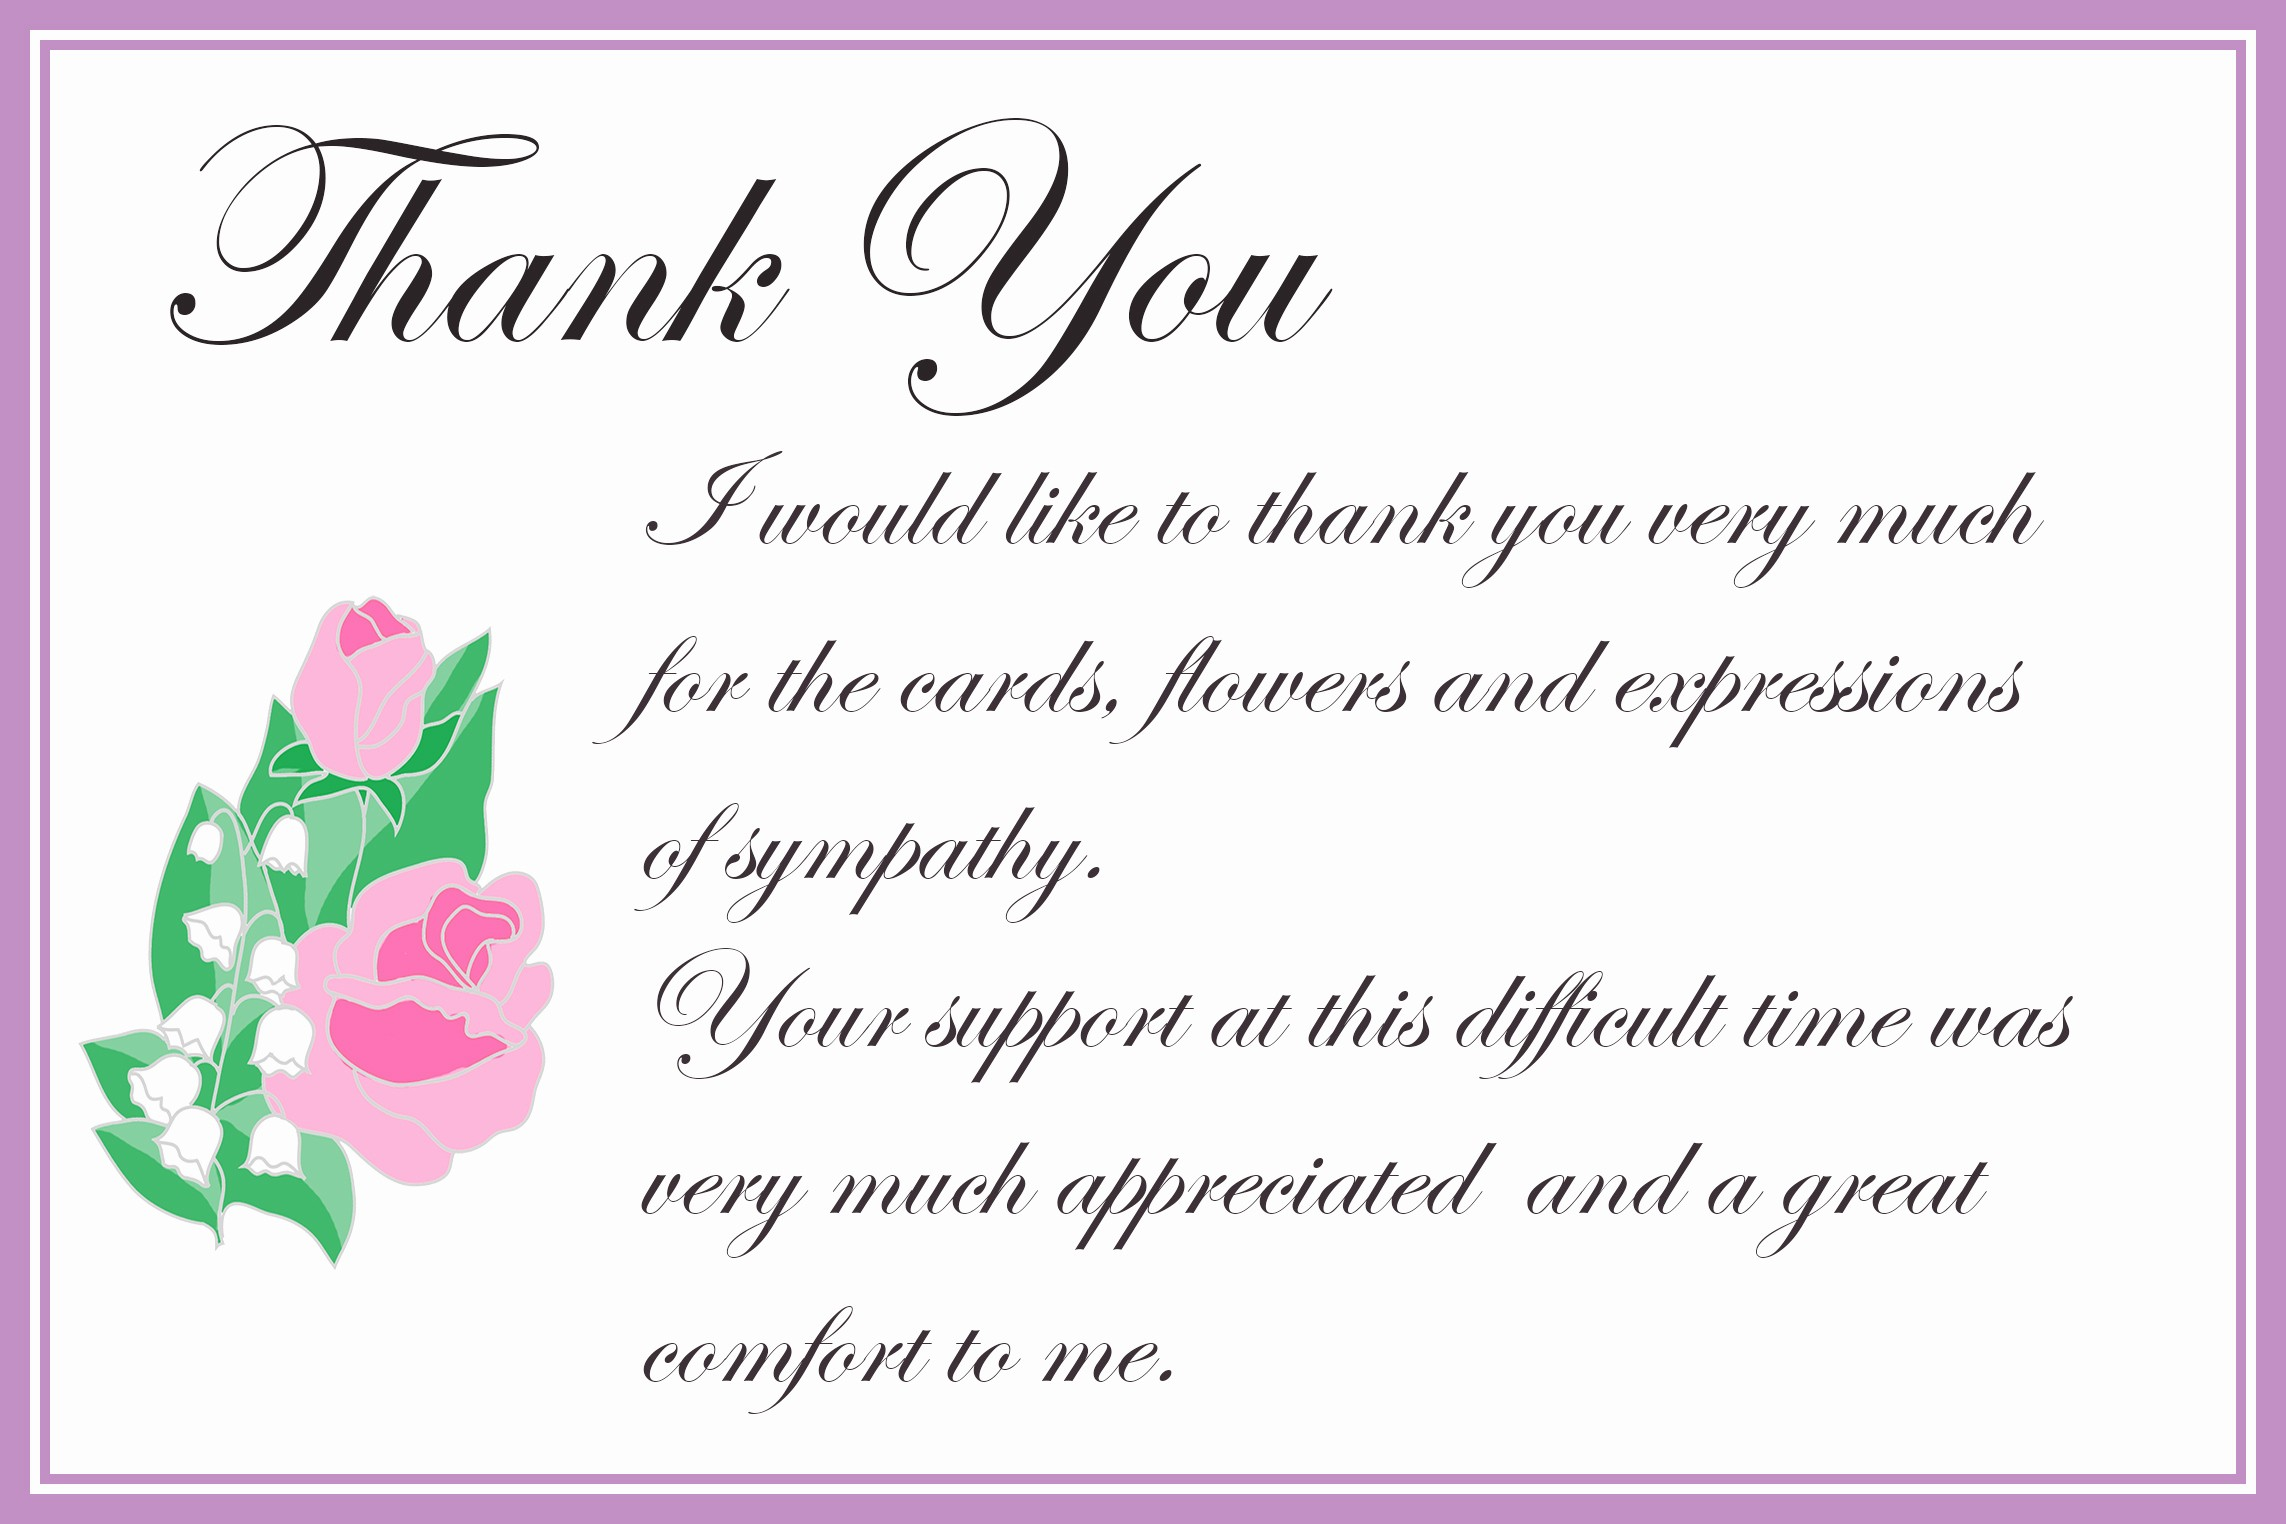 Words for Thank You Cards Beautiful Printable Thank You Cards – Free Printable Greeting Cards